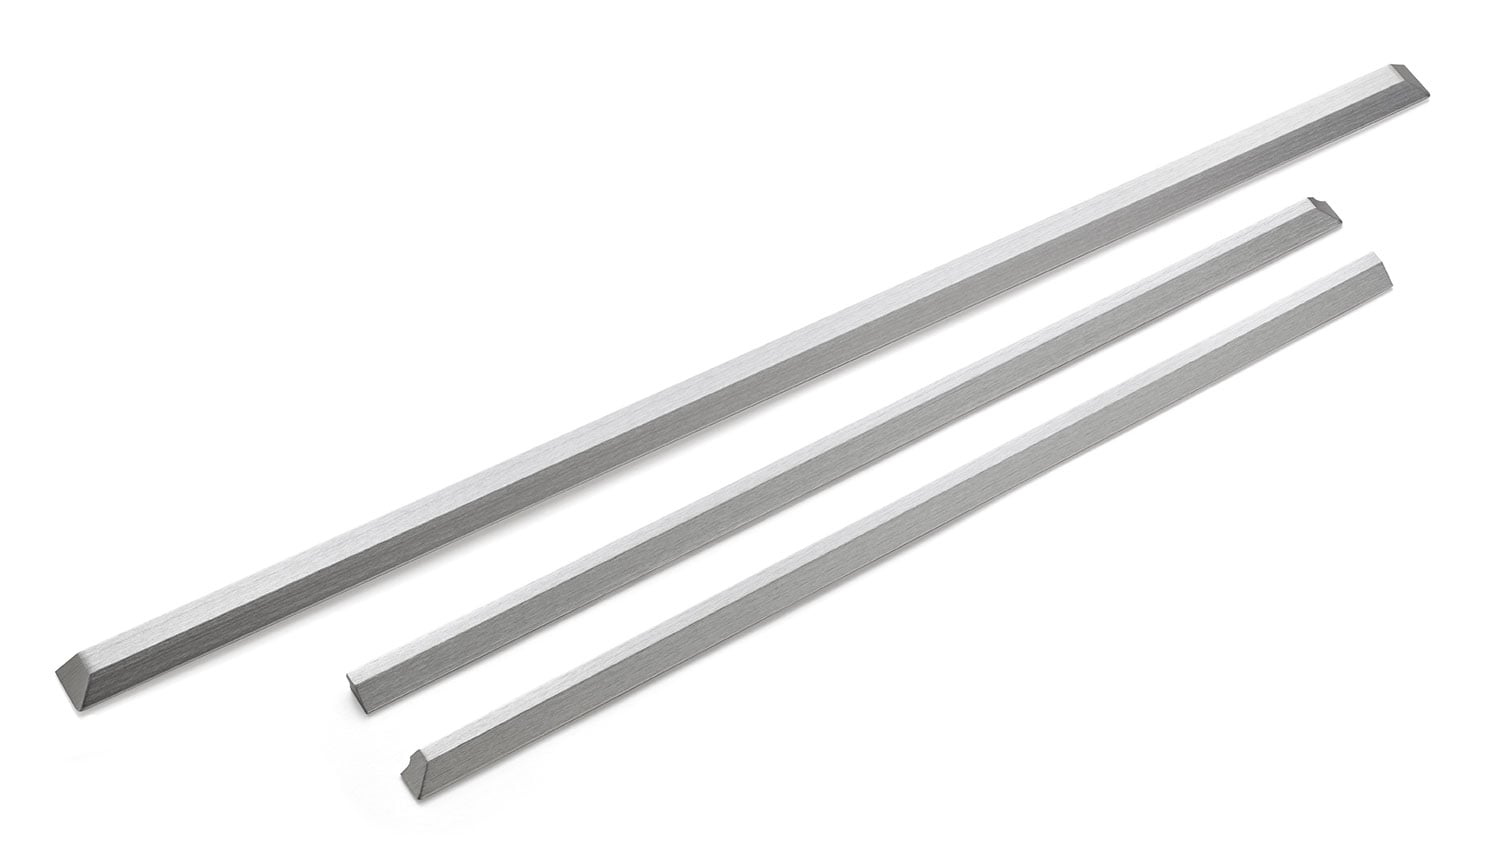 Appliance Accessories - Whirlpool Range Trim Kit